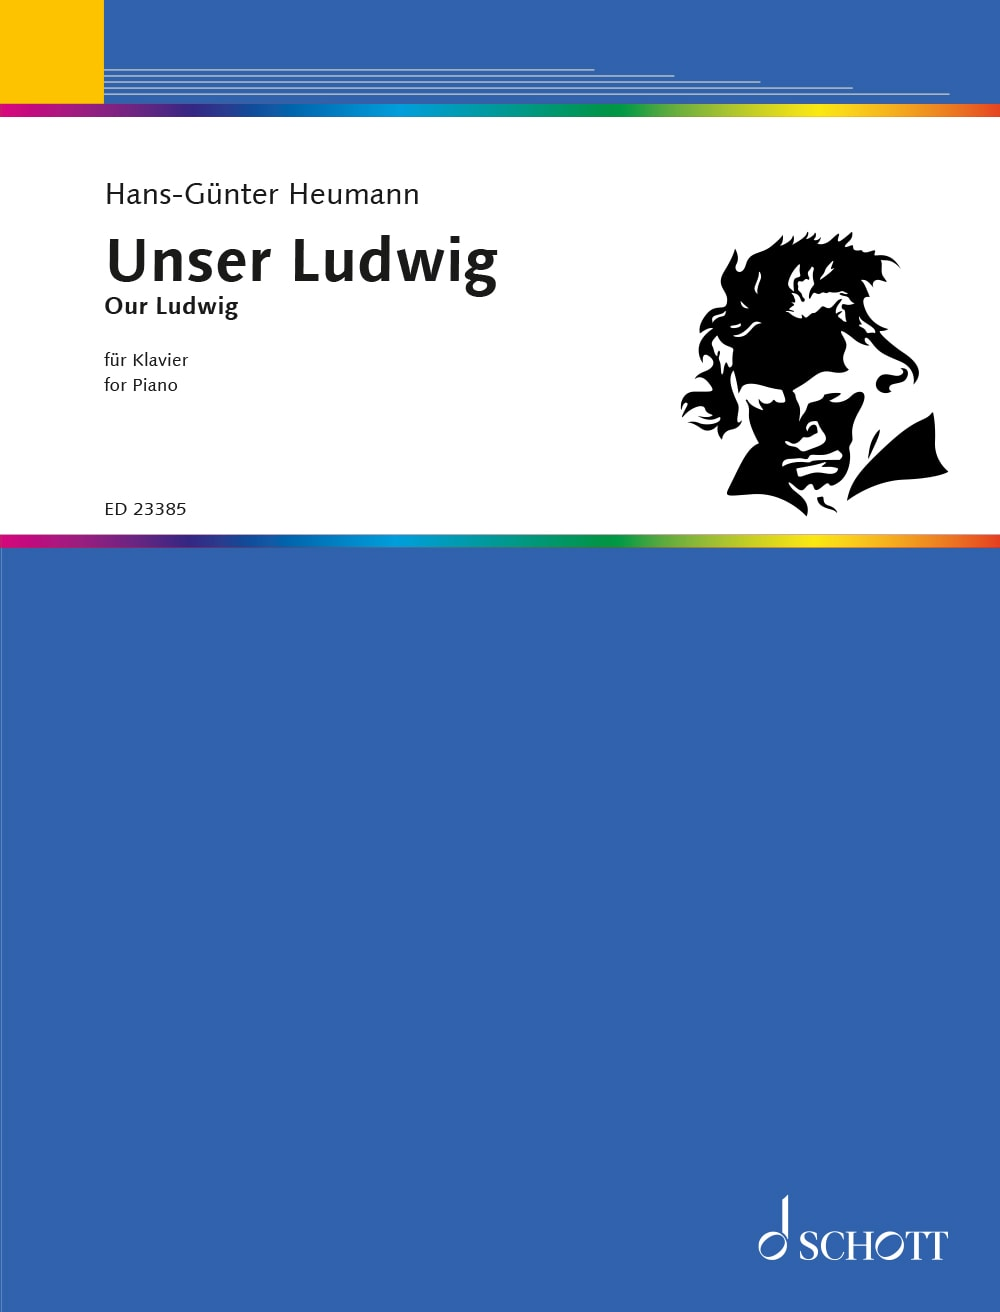 Unser Ludwig